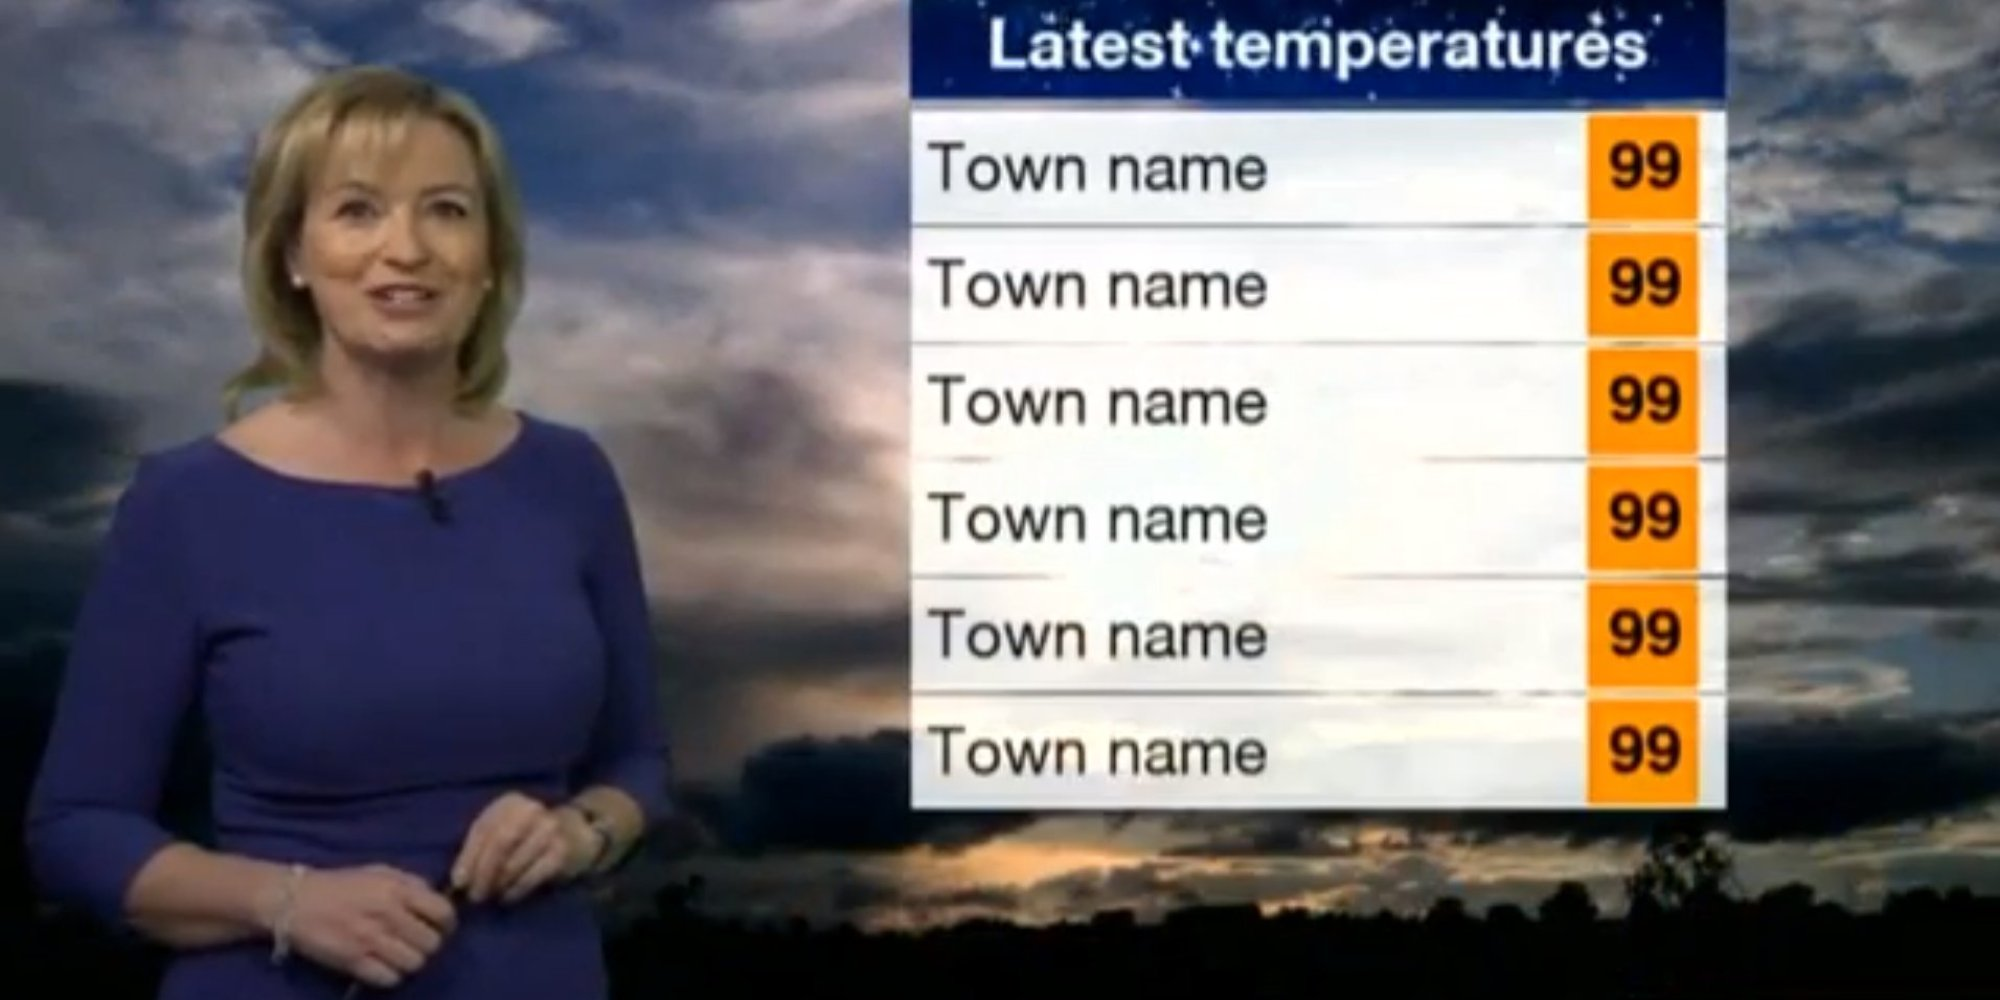 Bbc weather - Bbc Weather Blooper Says It S Going To Be 99 Everywhere Video Huffpost Uk